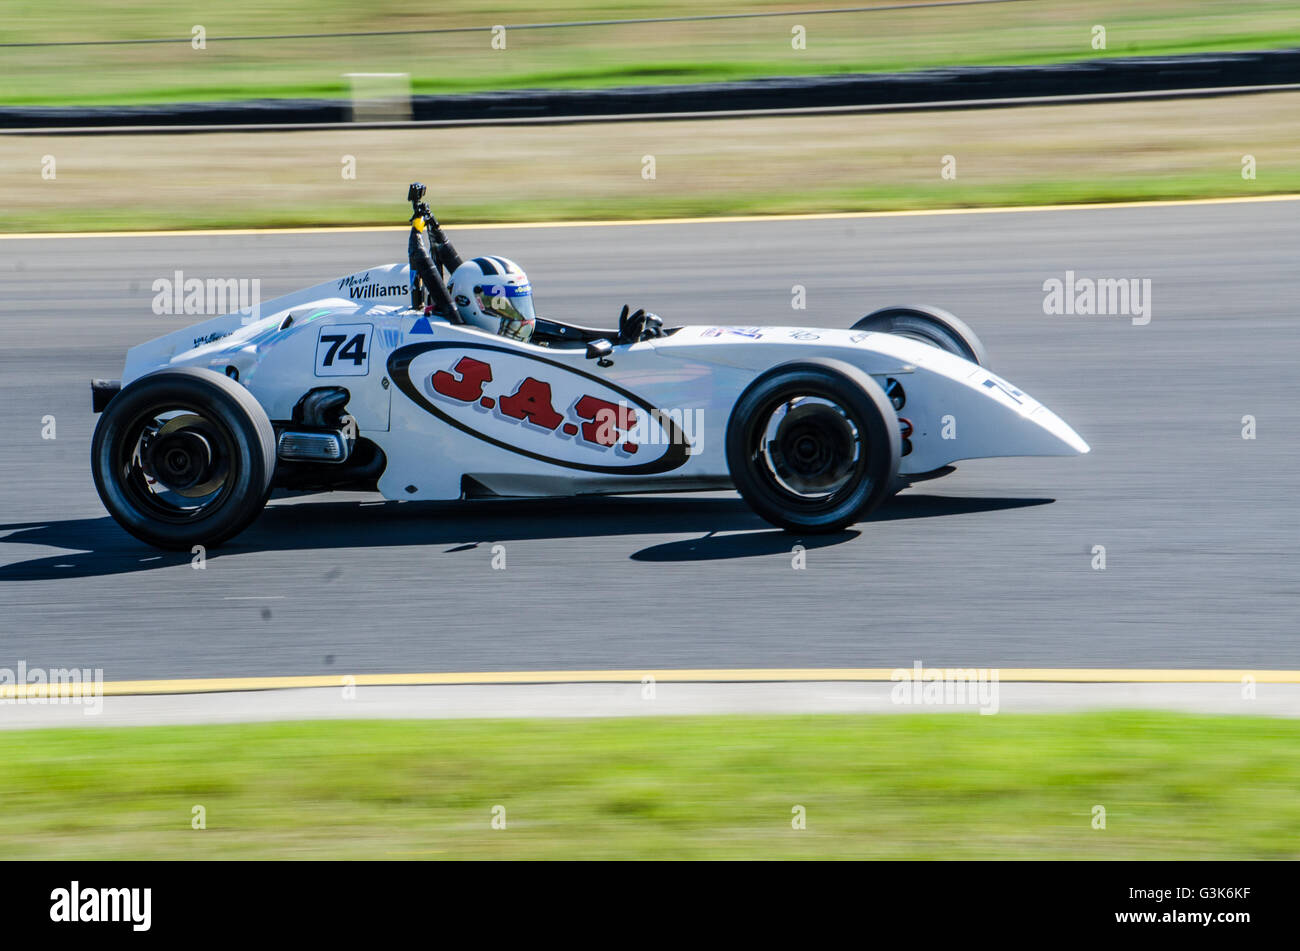 Bon Day 2 Of The New South Wales Motor Race Championships Round 2 Featured A  Wide Variety Of Racing Including Supersports, Sports Sedans, Formula Cars,  ...